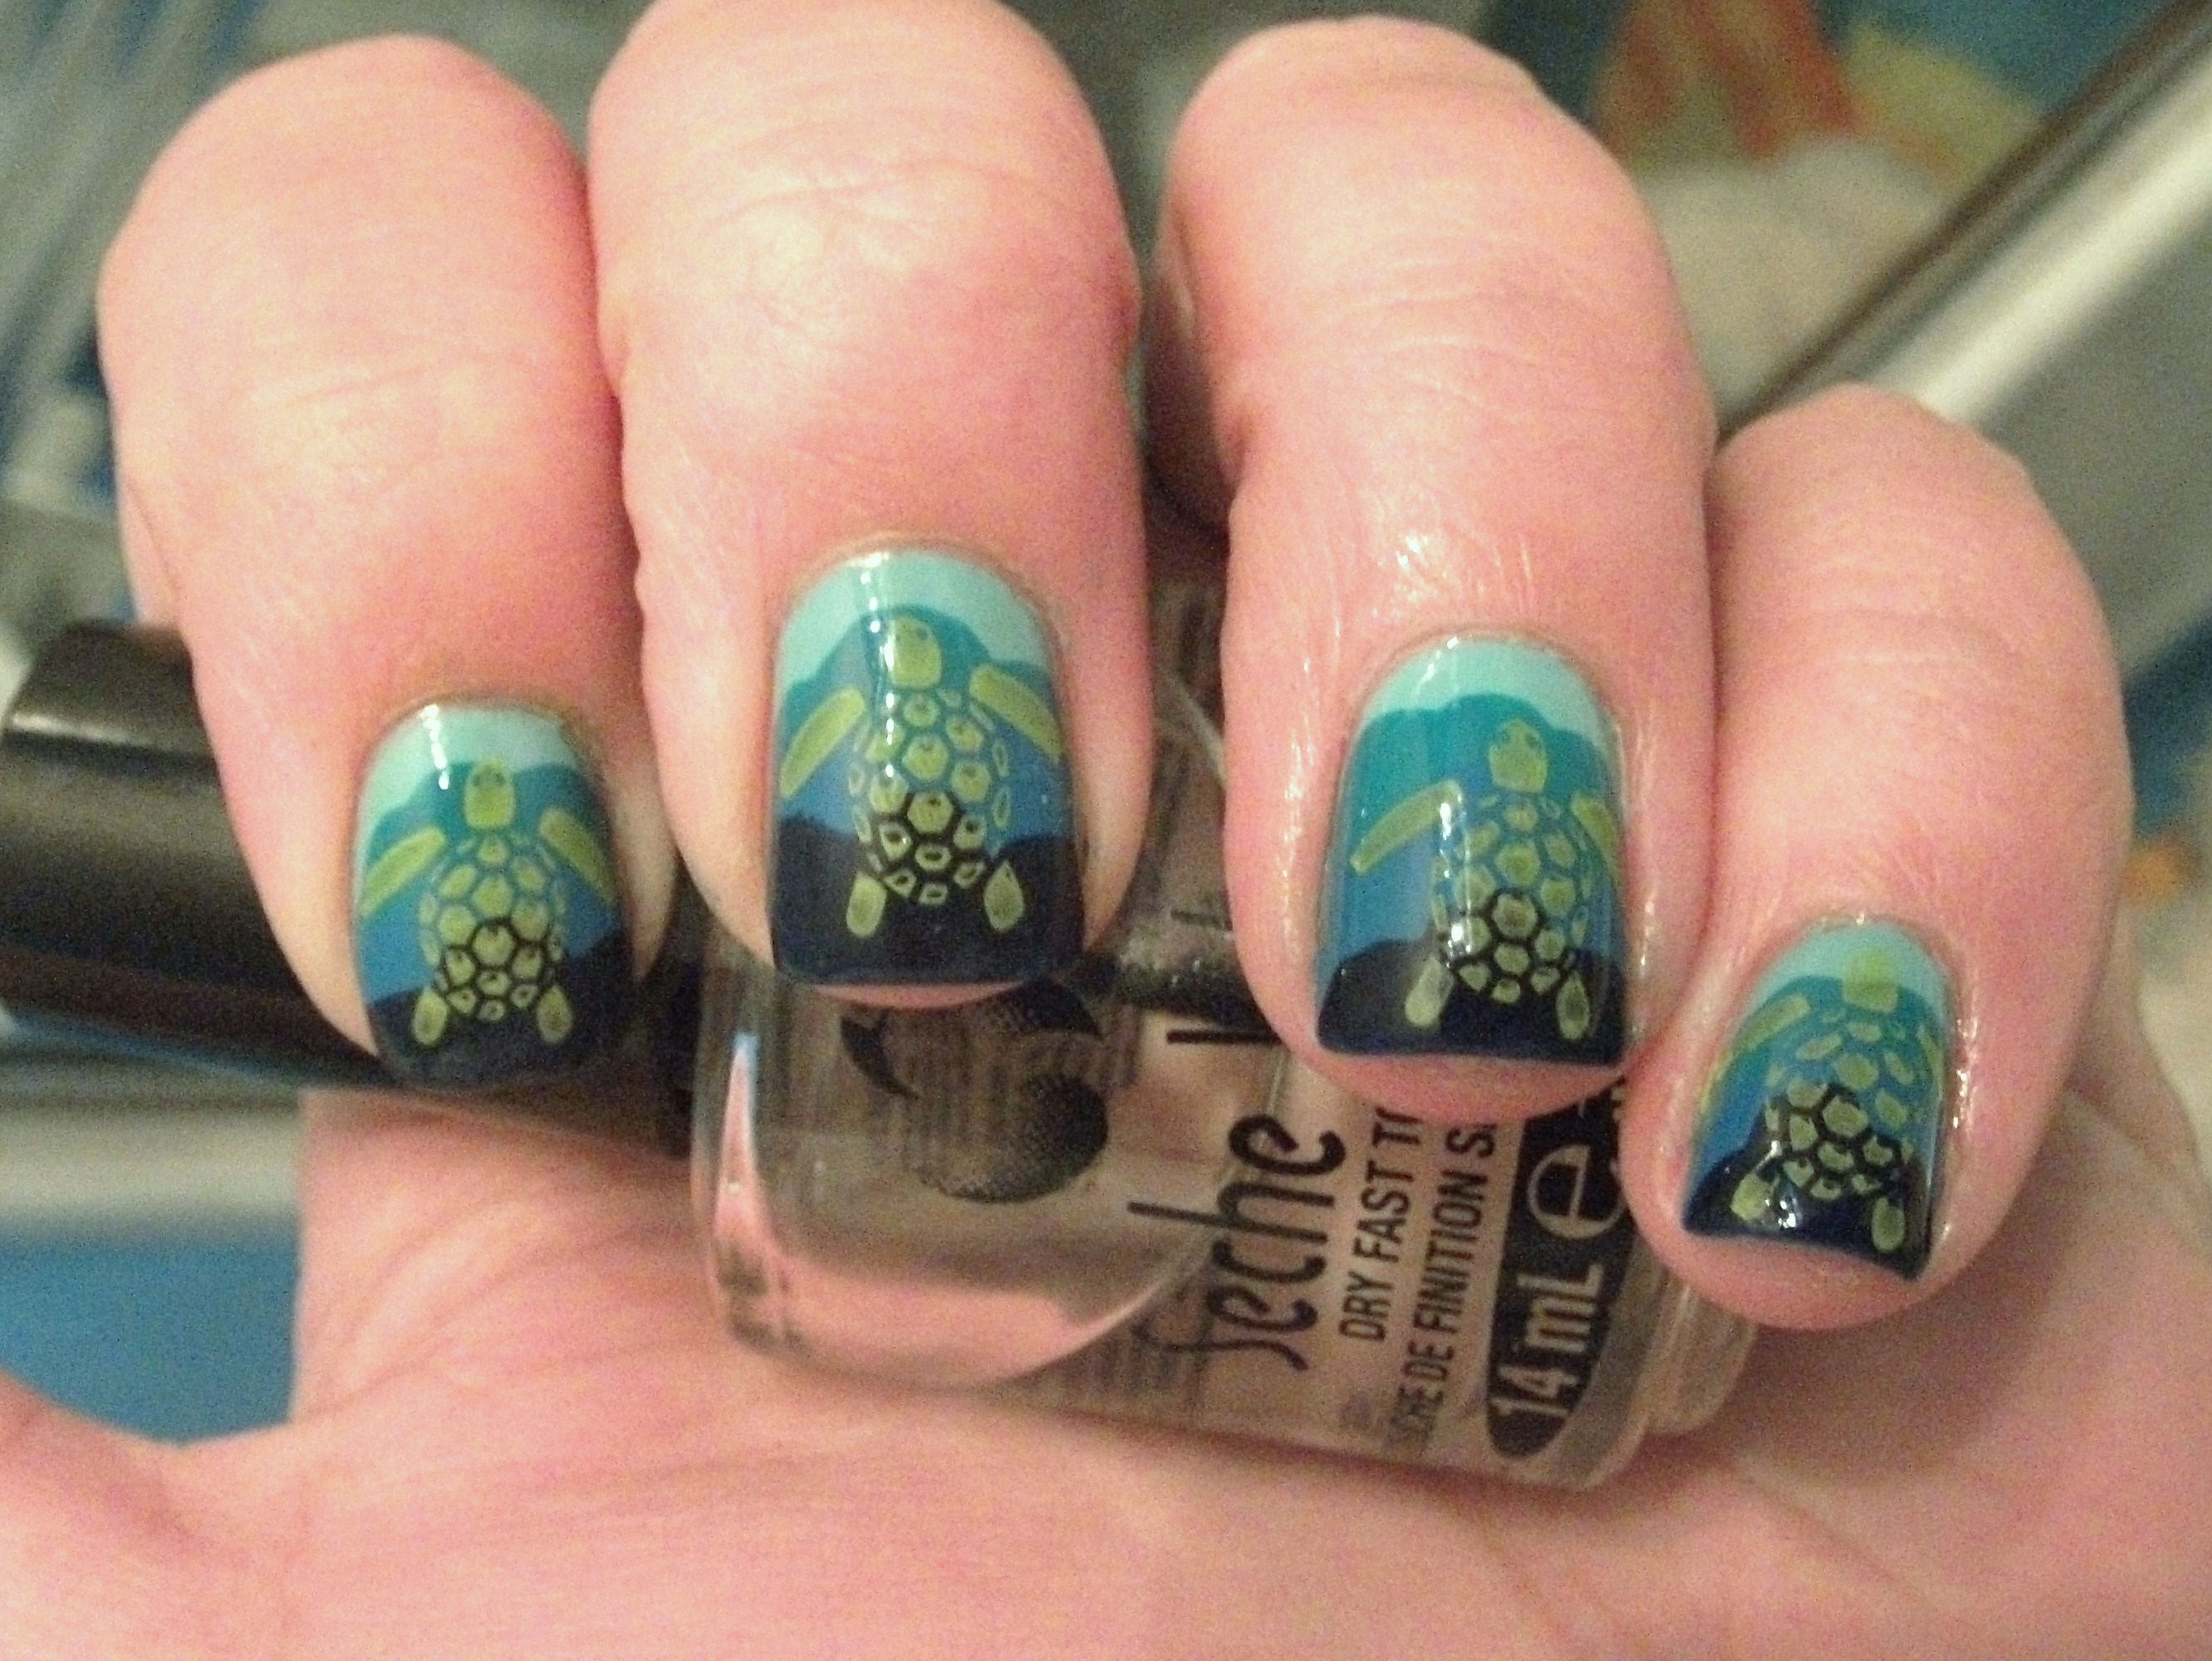 Sea turtle nails polish me please how to get these nails prinsesfo Images